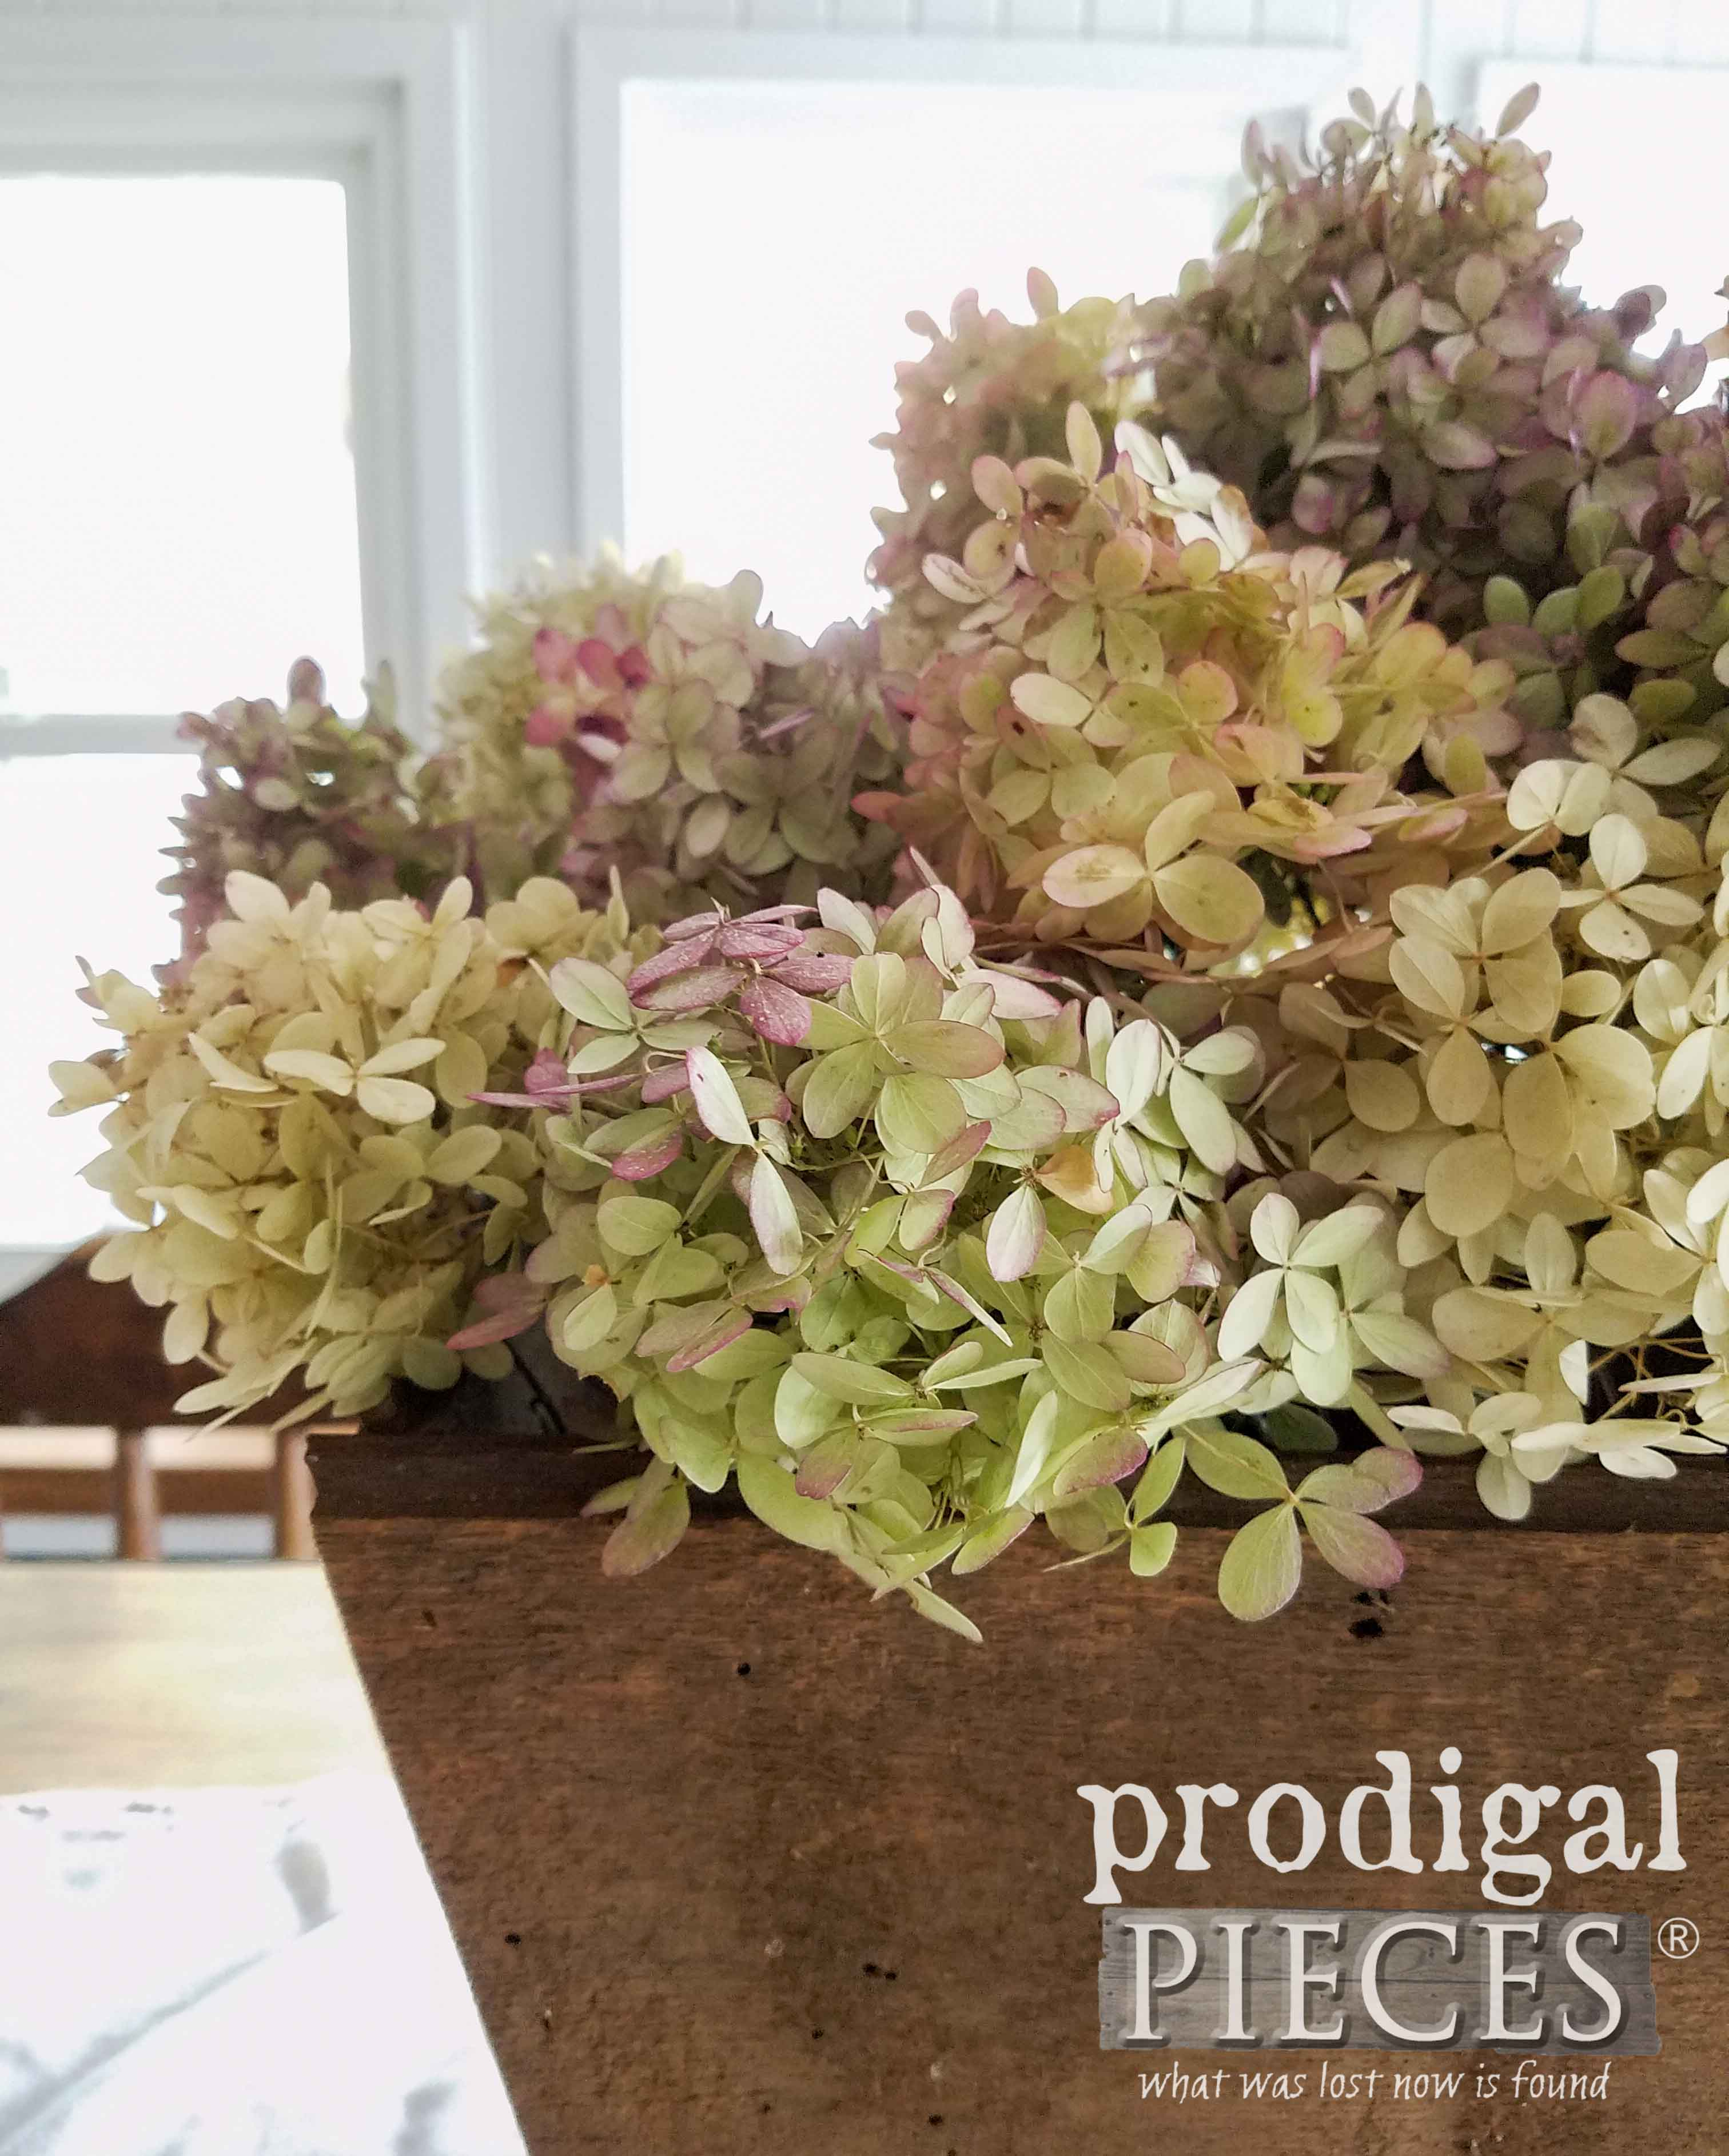 Bouquet of Hydrangea Blooms for Farmhouse Decor by Prodigal Pieces | prodigalpieces.com